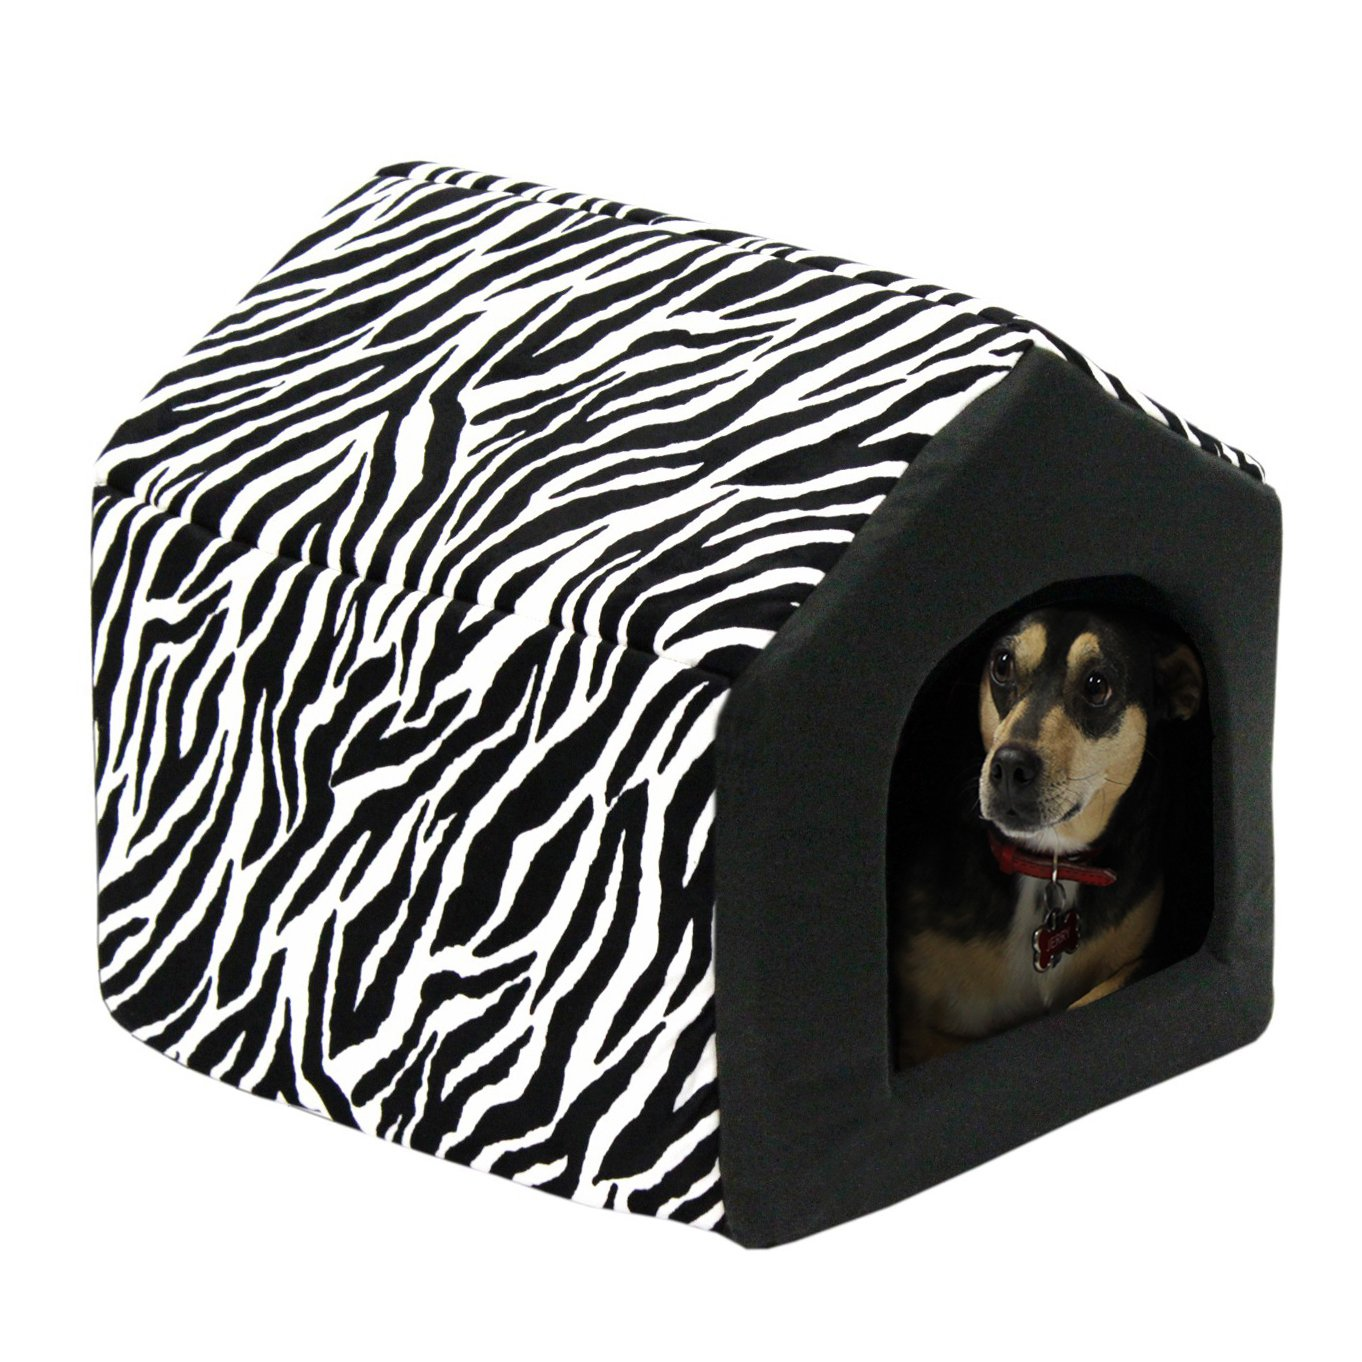 new pet puppy dog house indoor sofa bed couch cute soft plush fabric dogs cats ebay. Black Bedroom Furniture Sets. Home Design Ideas